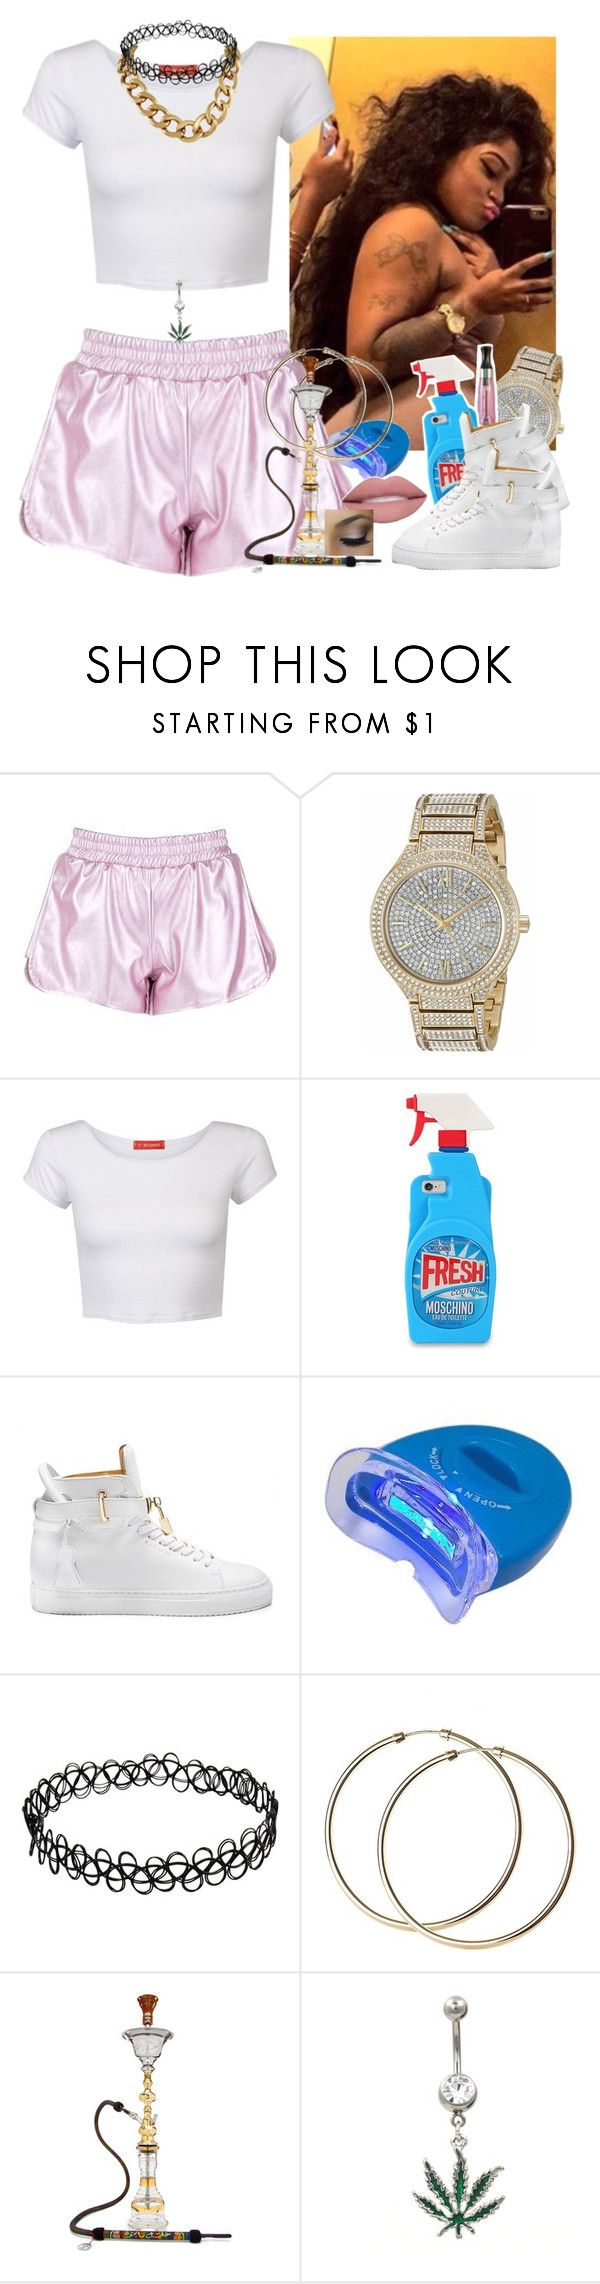 """✨"" by saucinonyou999 ❤ liked on Polyvore featuring Michael Kors, Influence, Moschino and BUSCEMI"